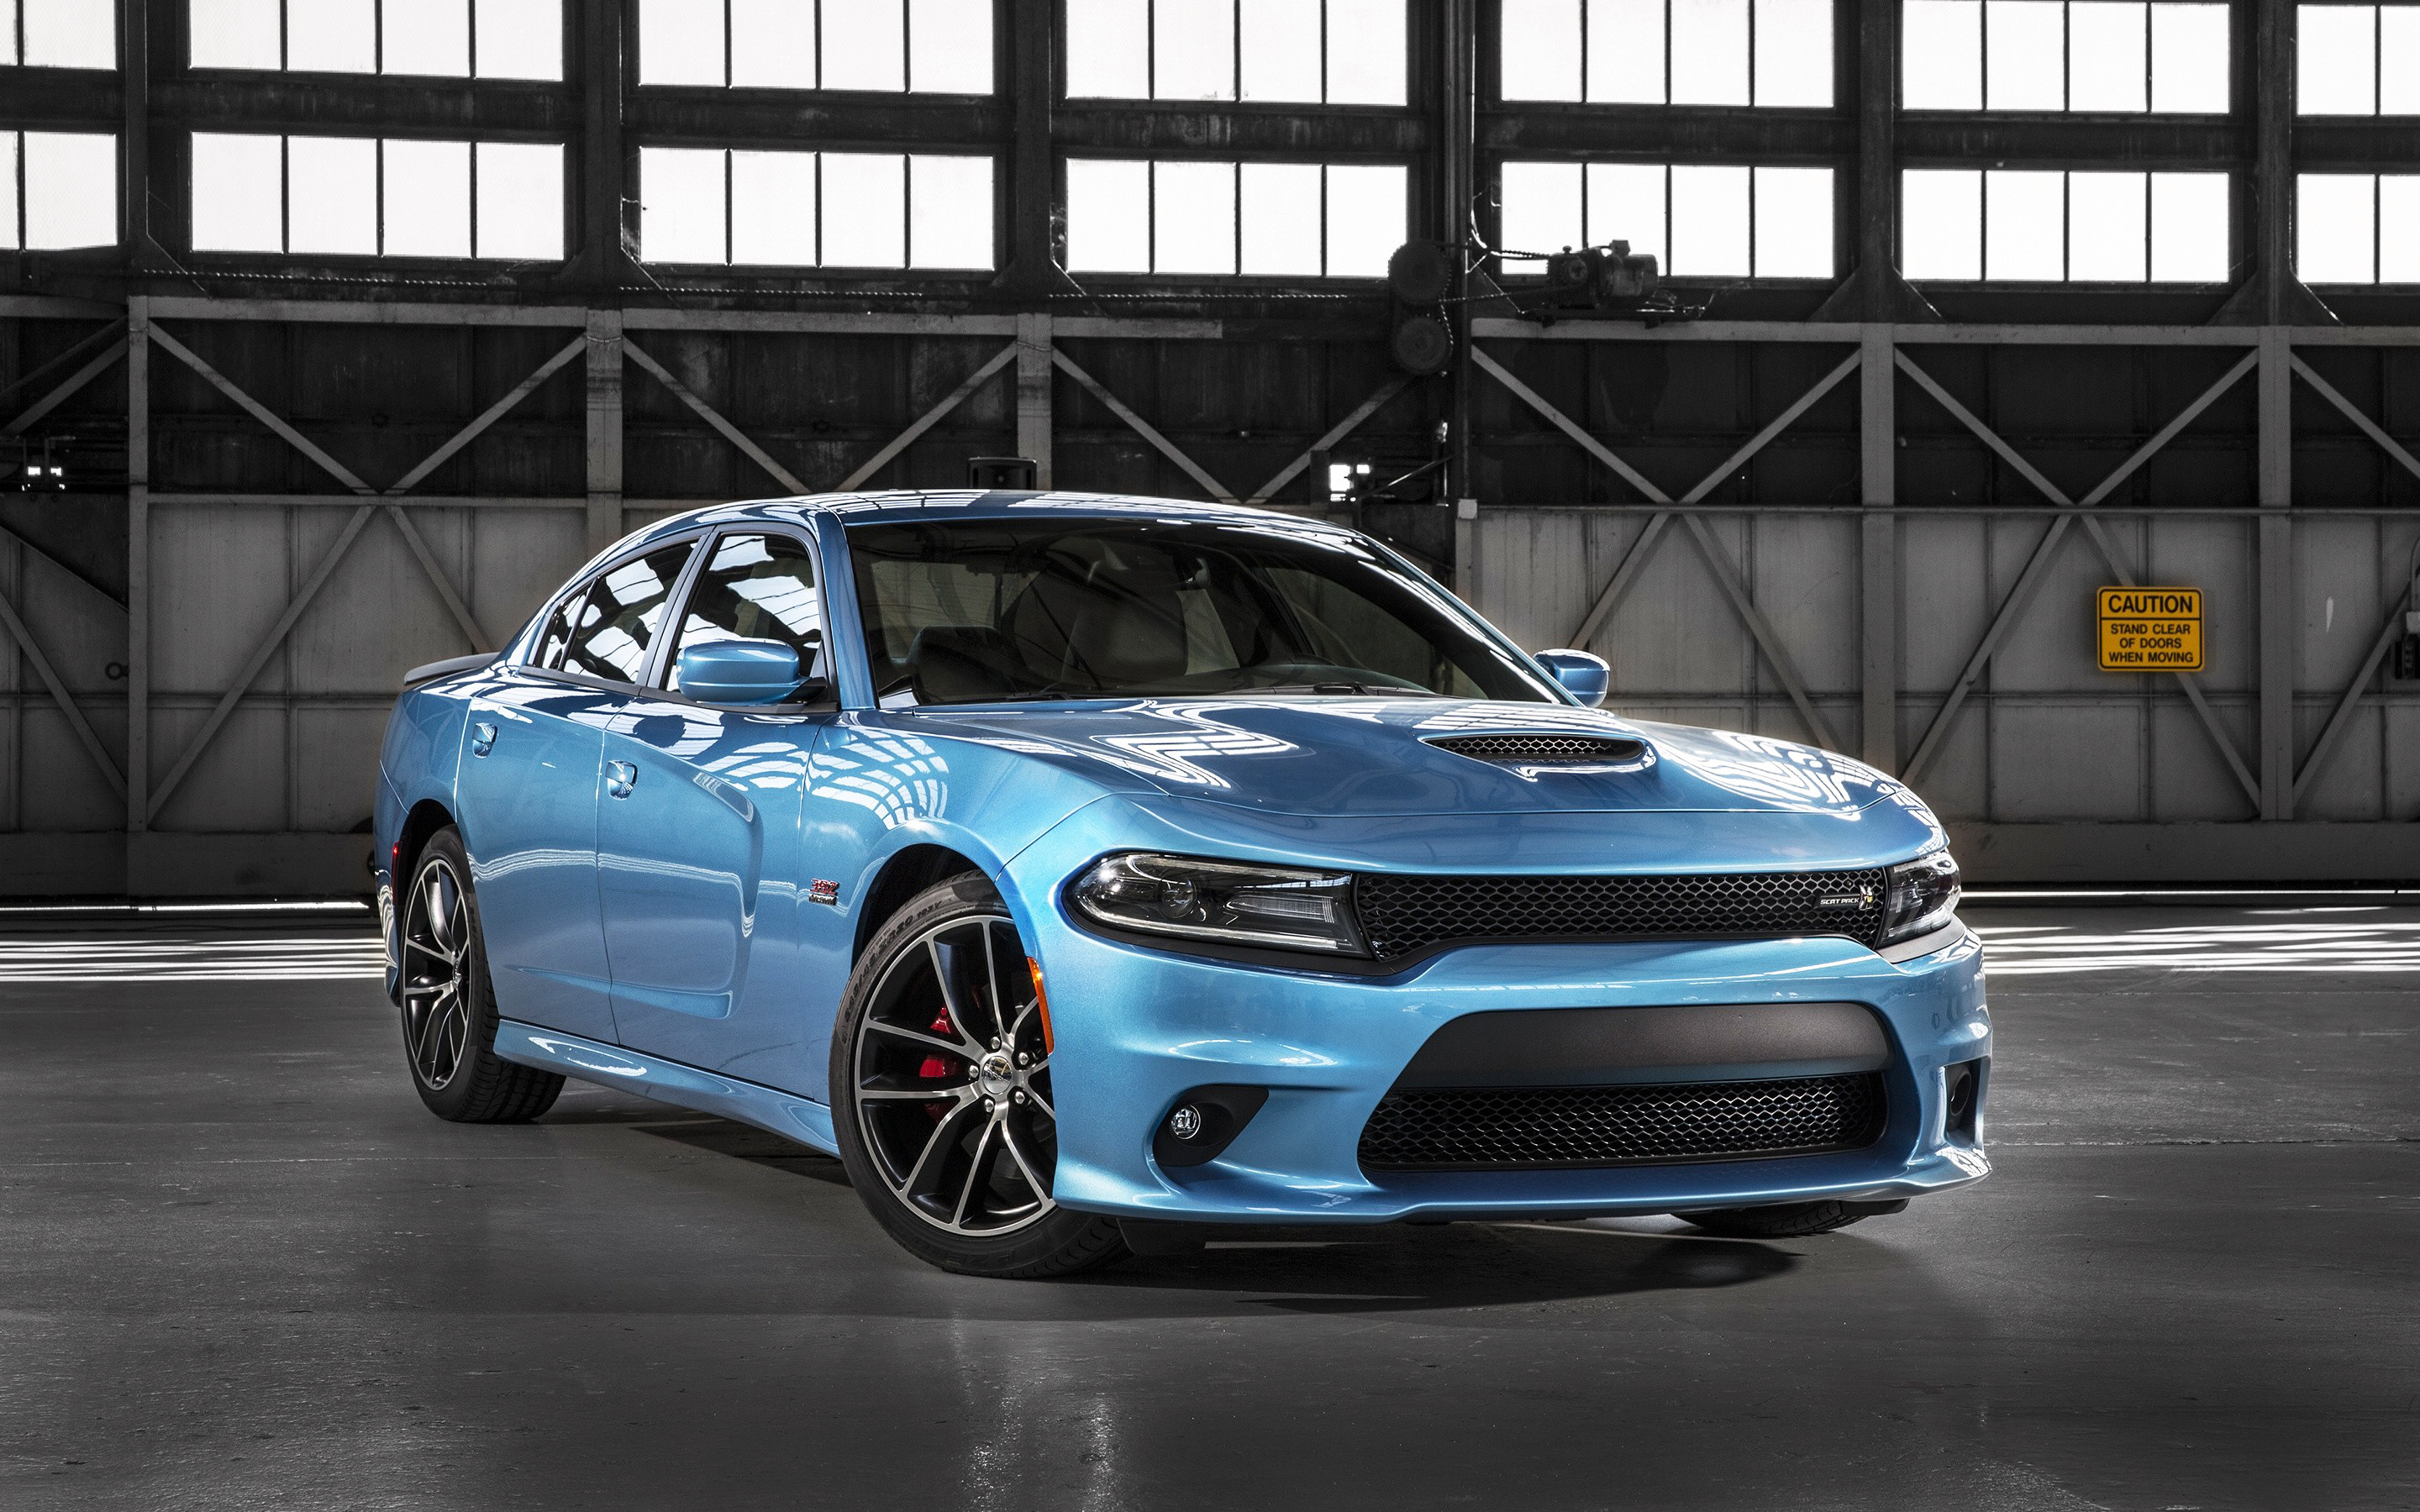 2880x1800 Dodge Charger RT Scat Pack Wallpapers | HD Wallpapers